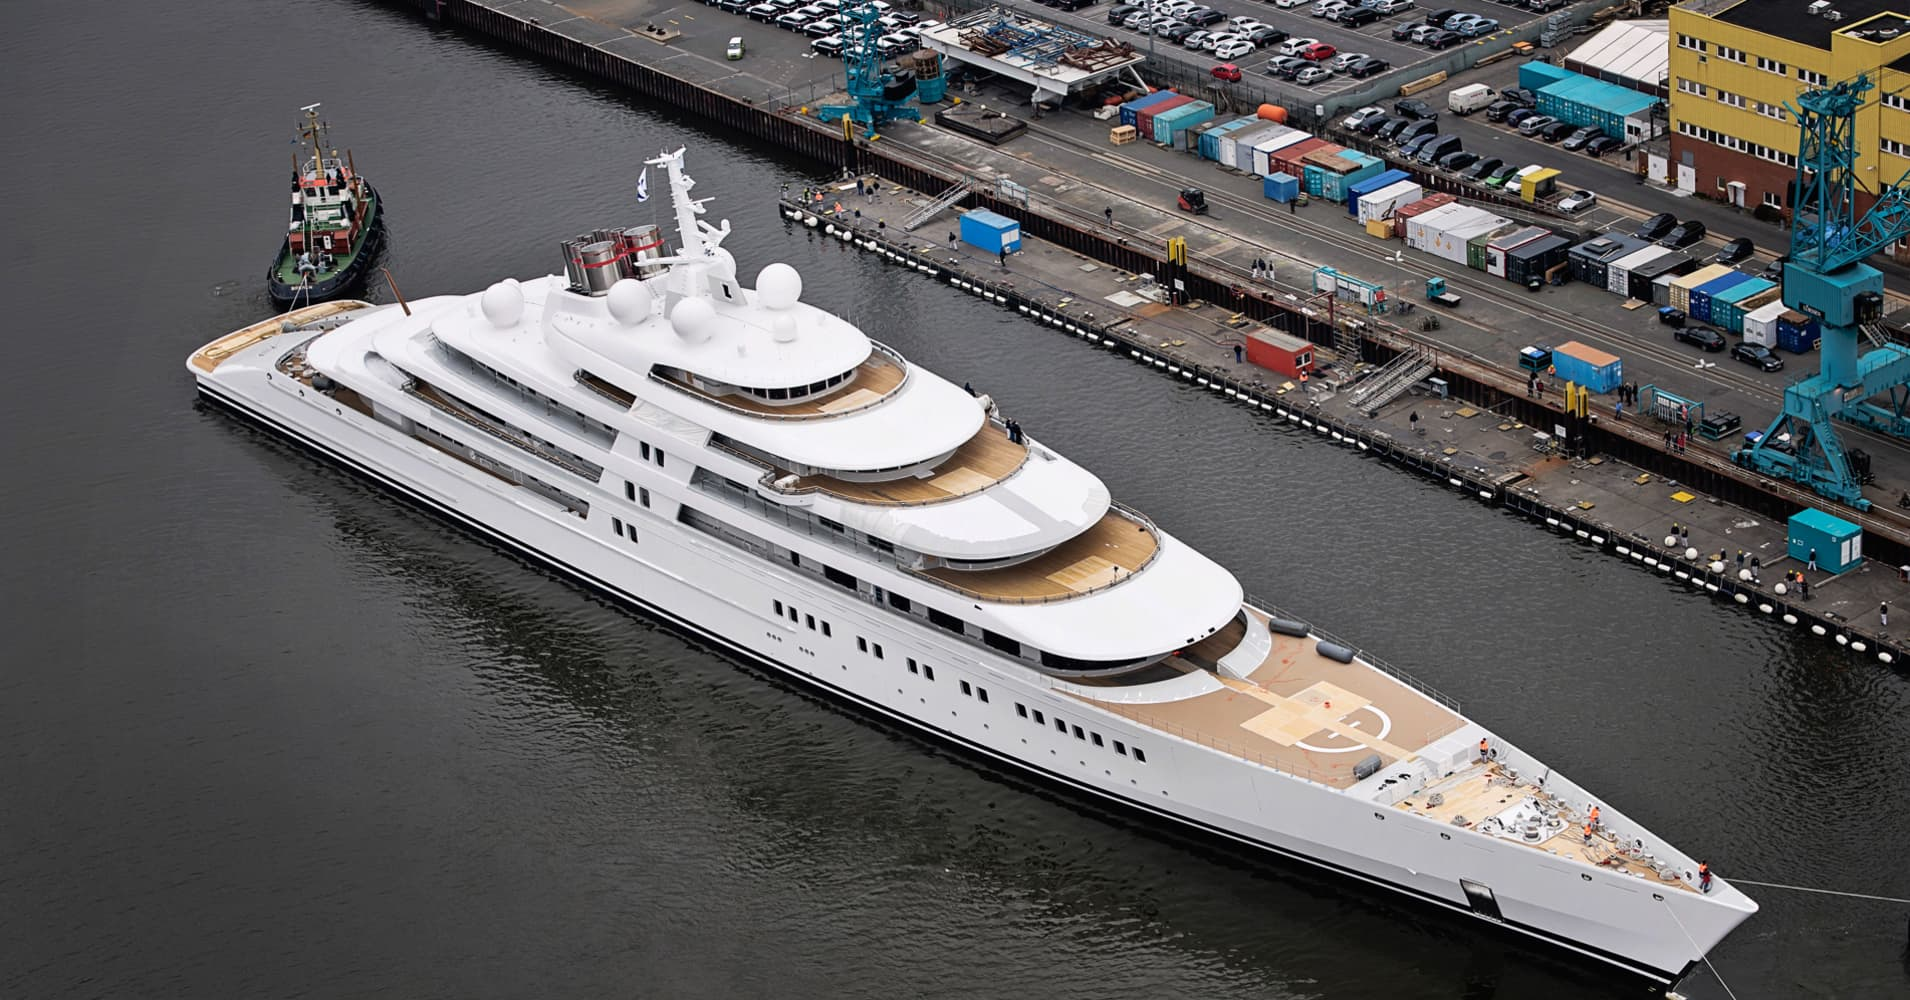 Superyacht World is Not Enough World 39 s Largest Superyacht is